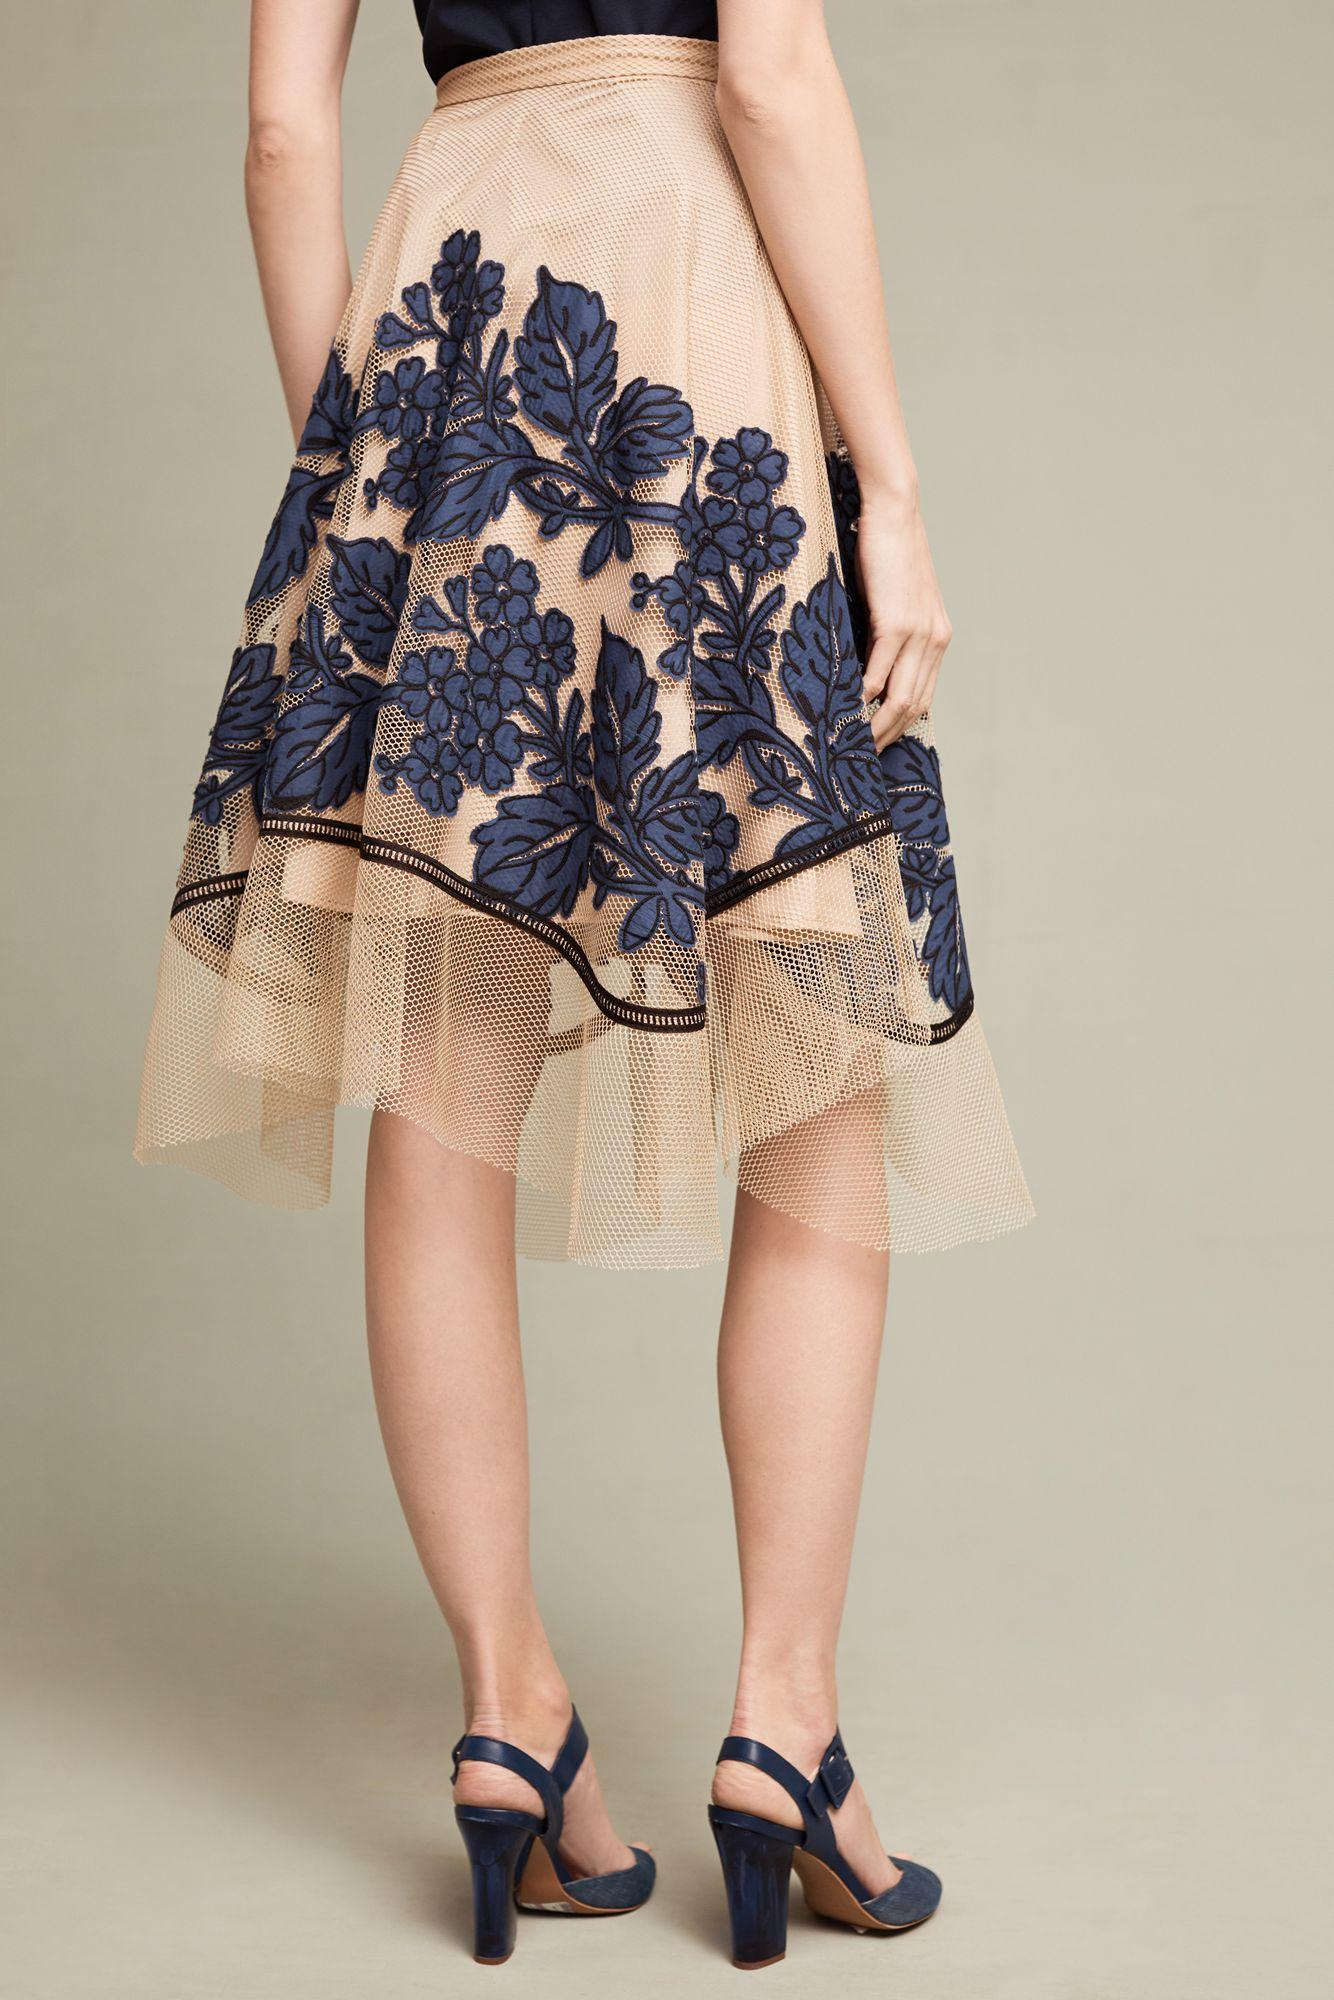 f19be1b601 Eva Franco Floral Netted Skirt in Blue - Lyst